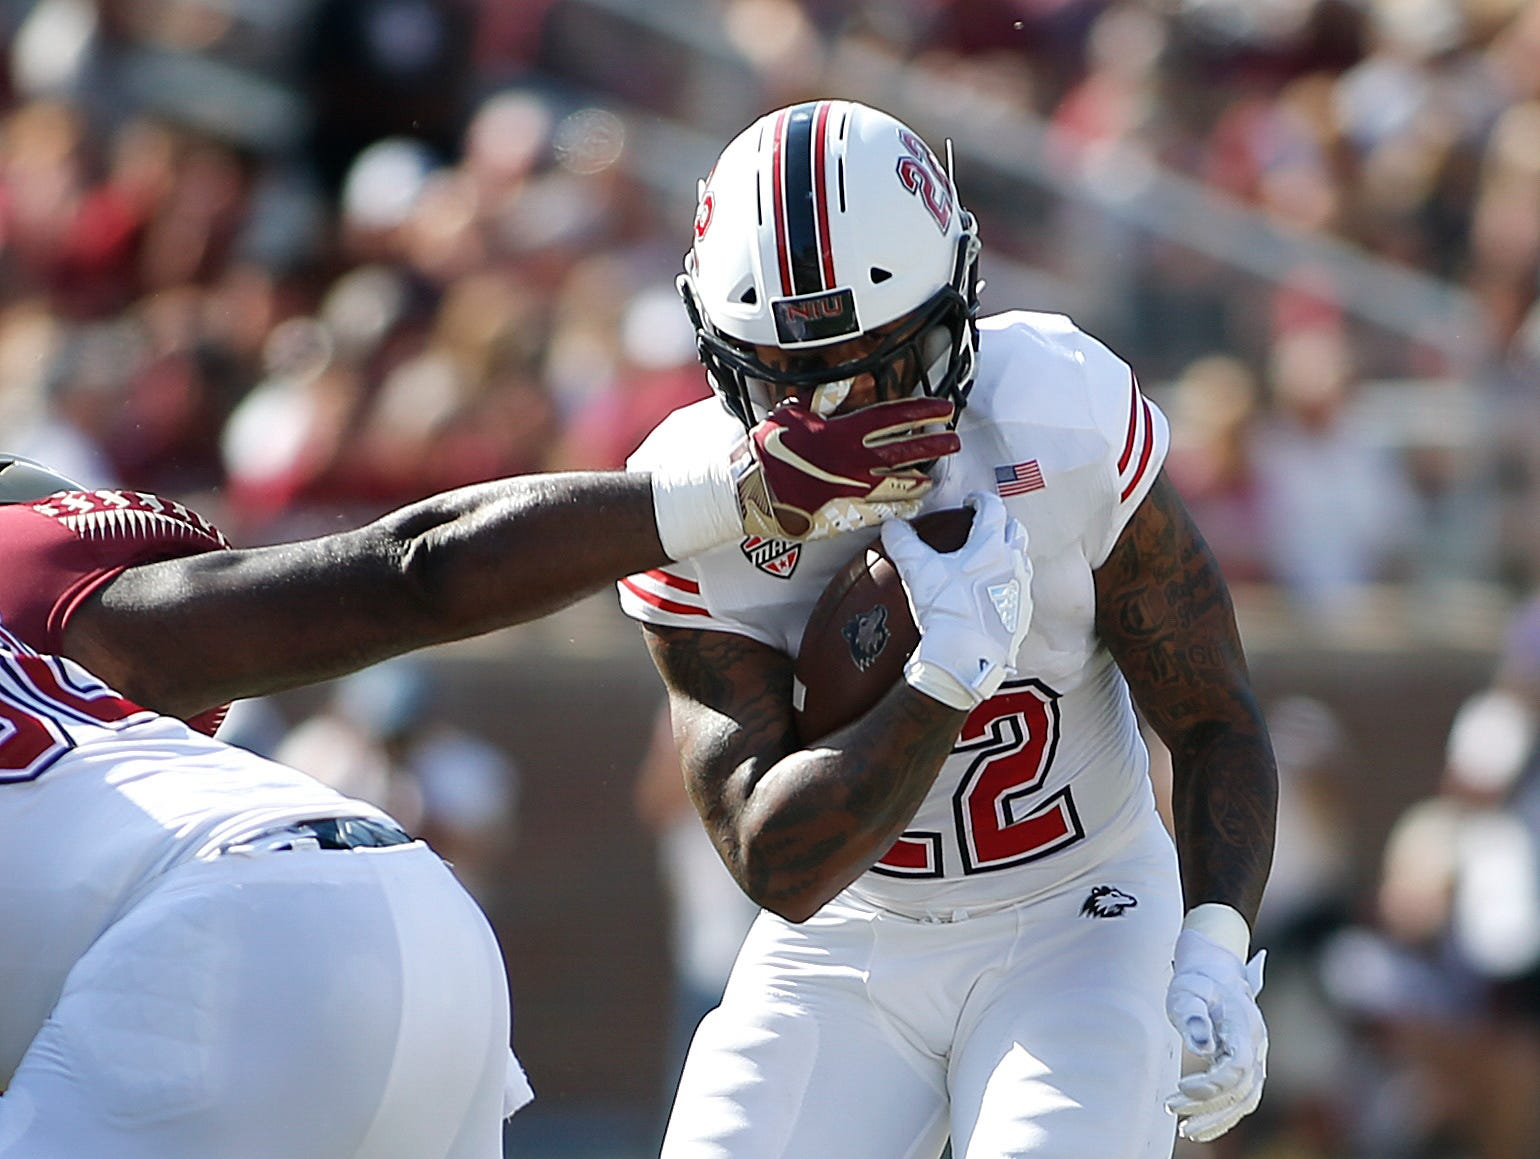 Sep 22, 2018; Tallahassee, FL, USA; Northern Illinois Huskies running back Tre Harbison (22) takes a hand to the face during the second quarter of play at Doak Campbell Stadium.